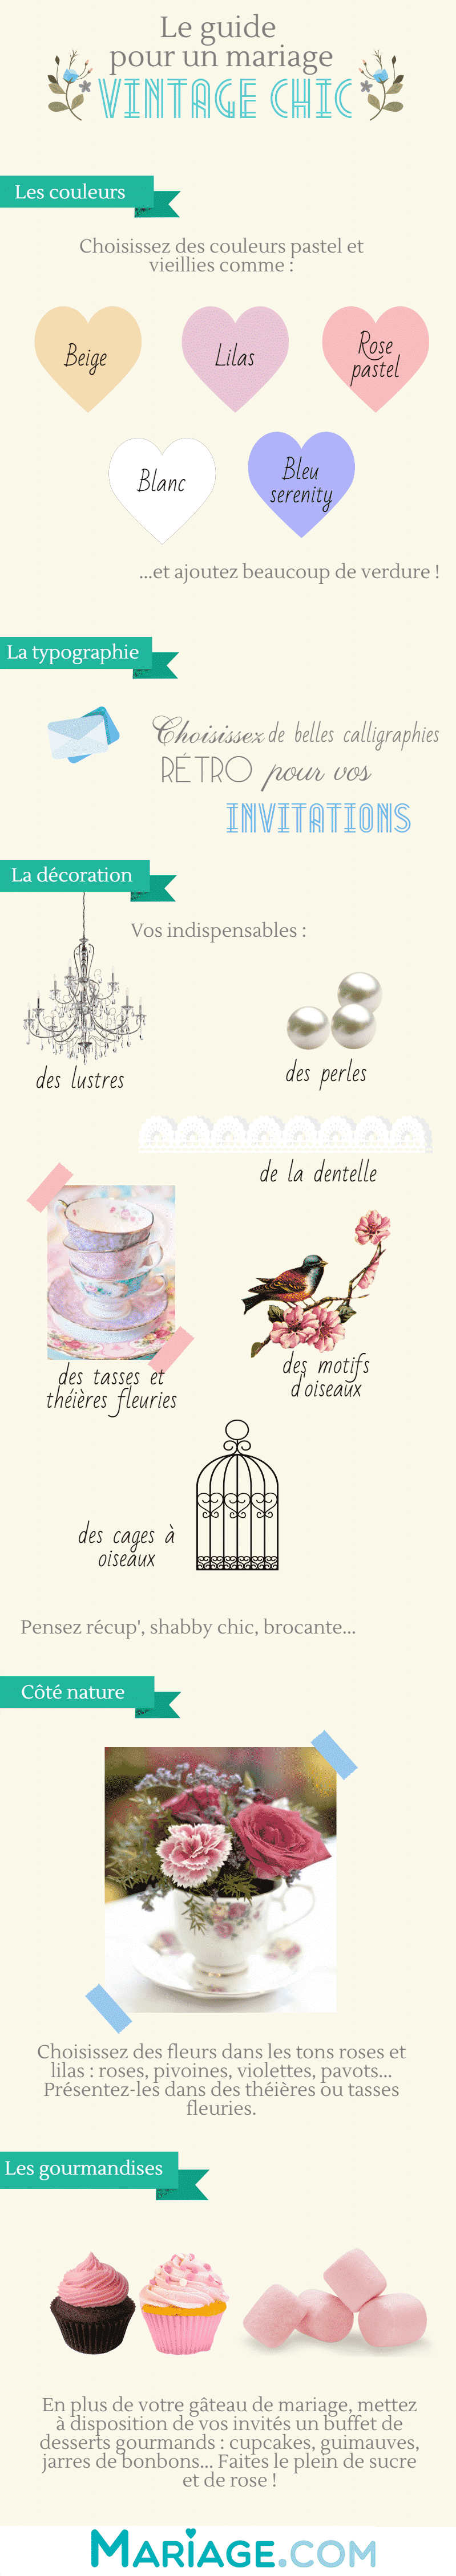 guide-mariage-vintage chic-infographie-mariage